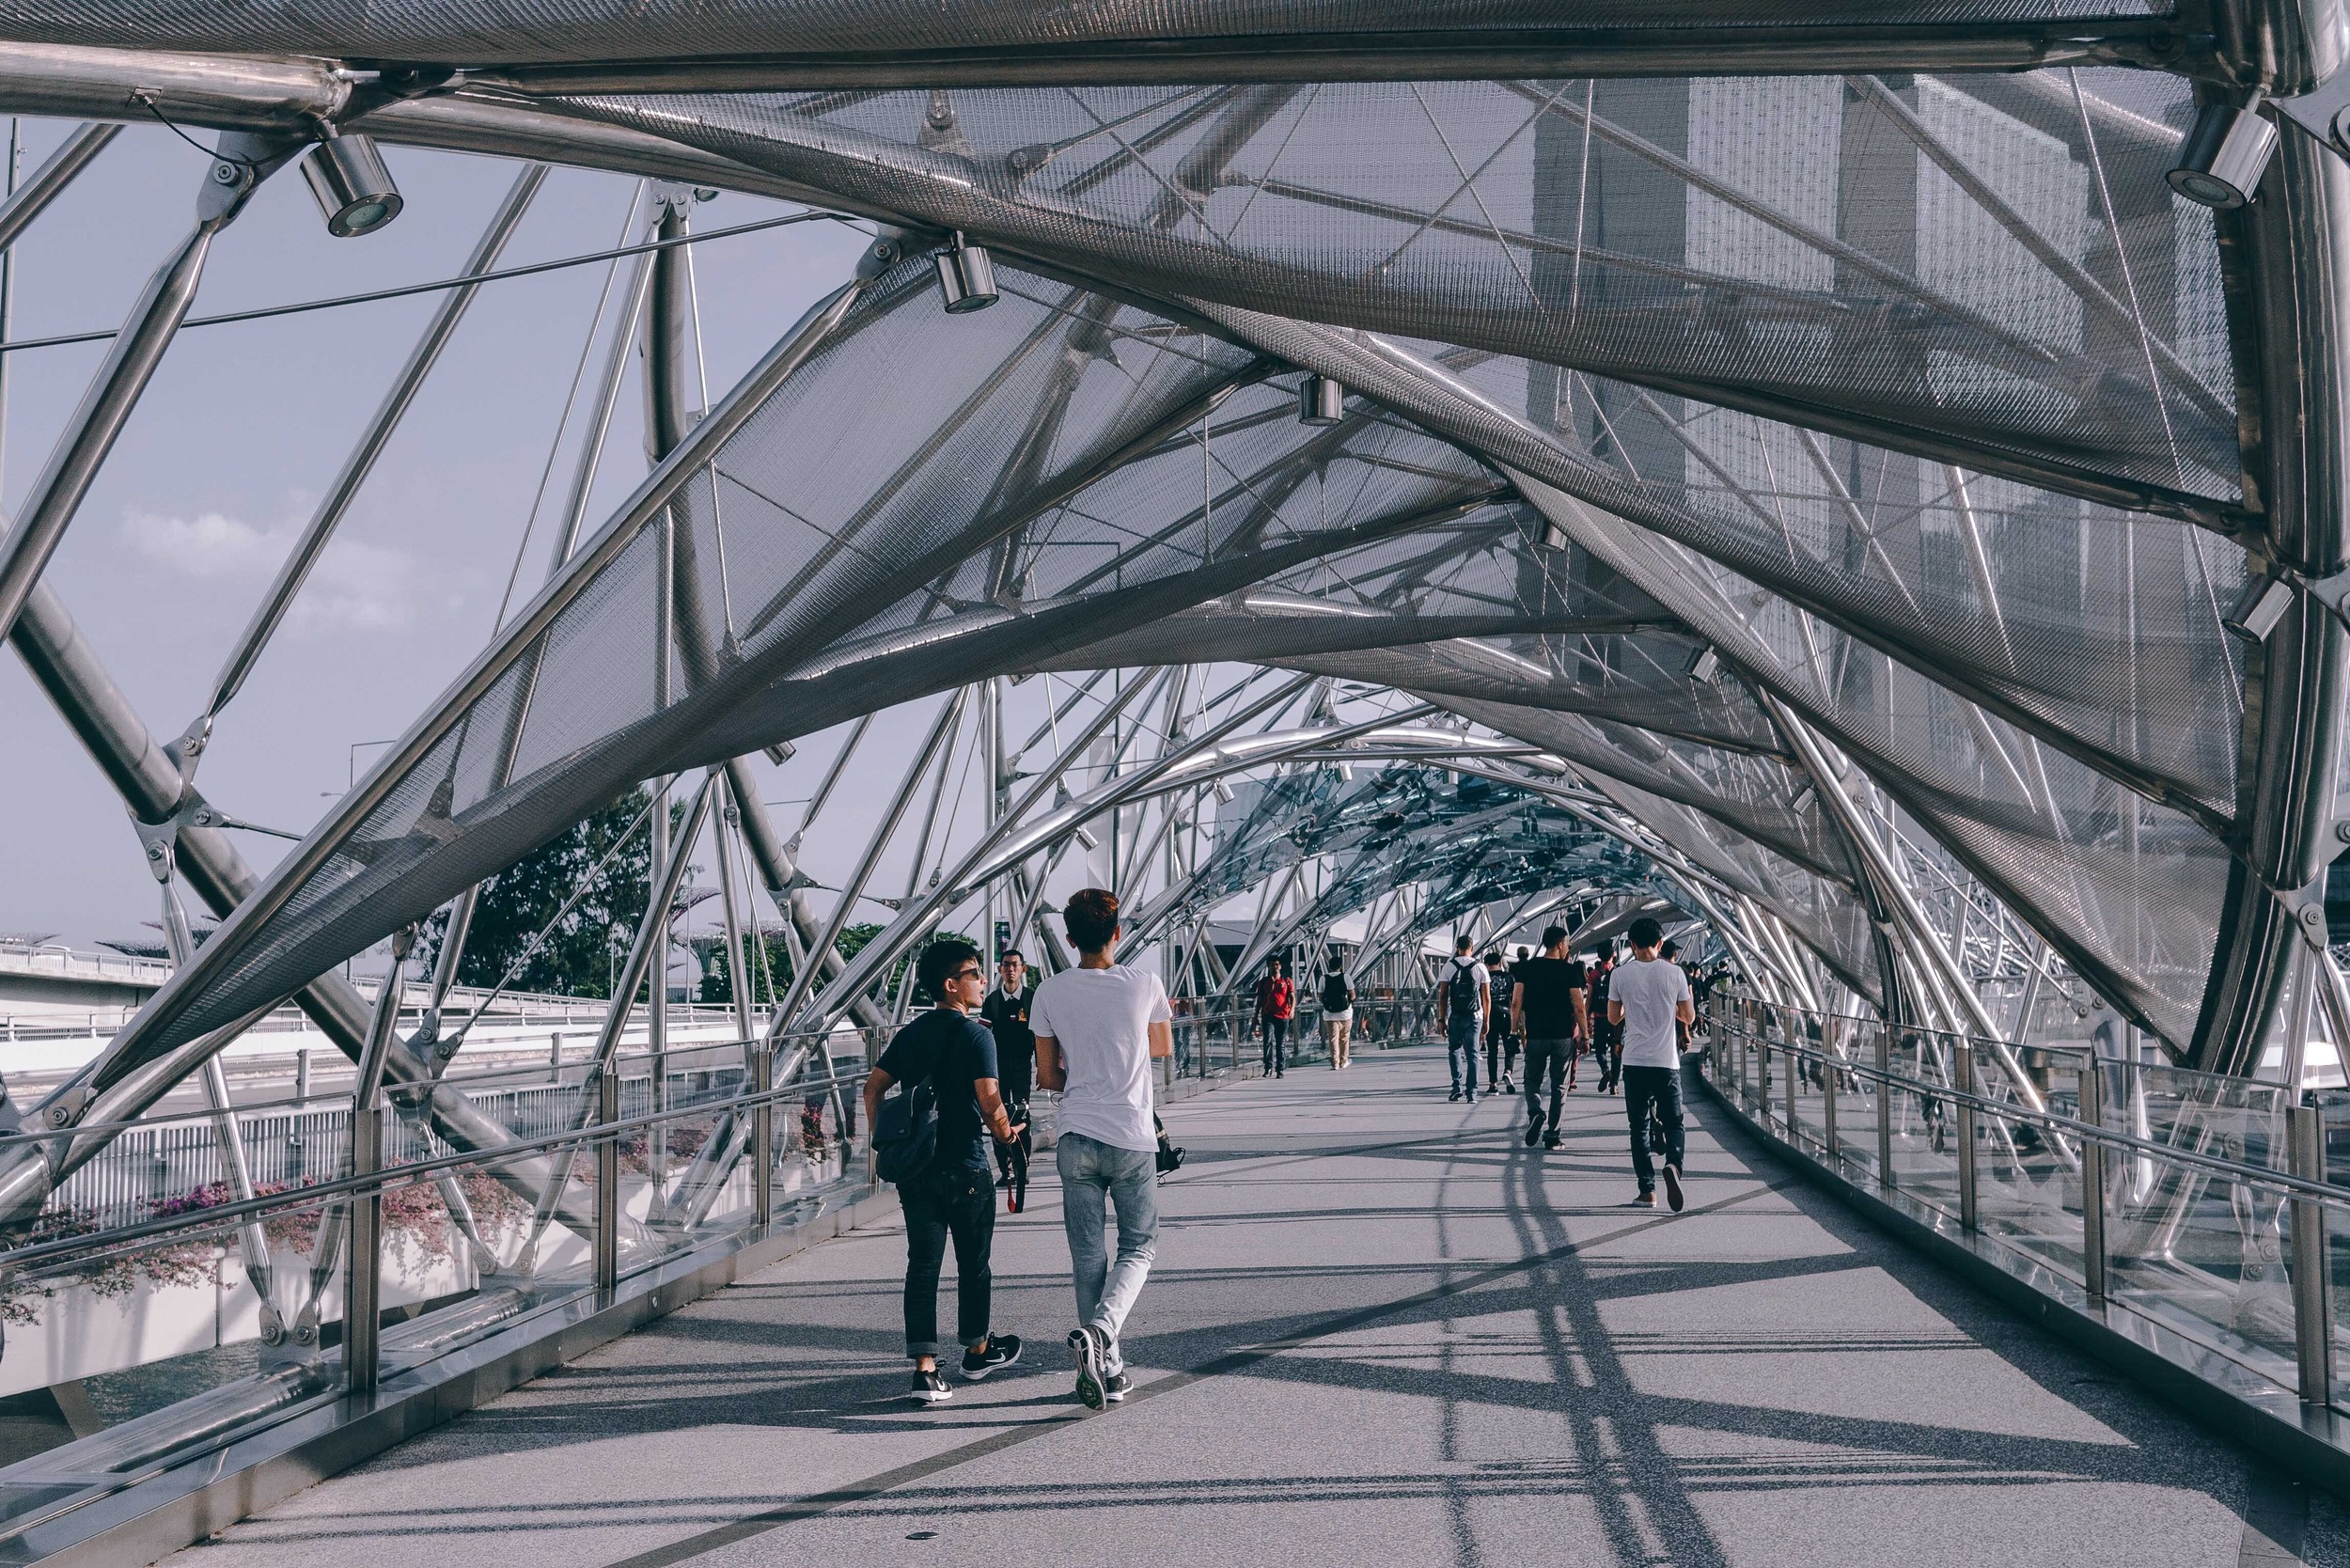 The Helix Bridge.